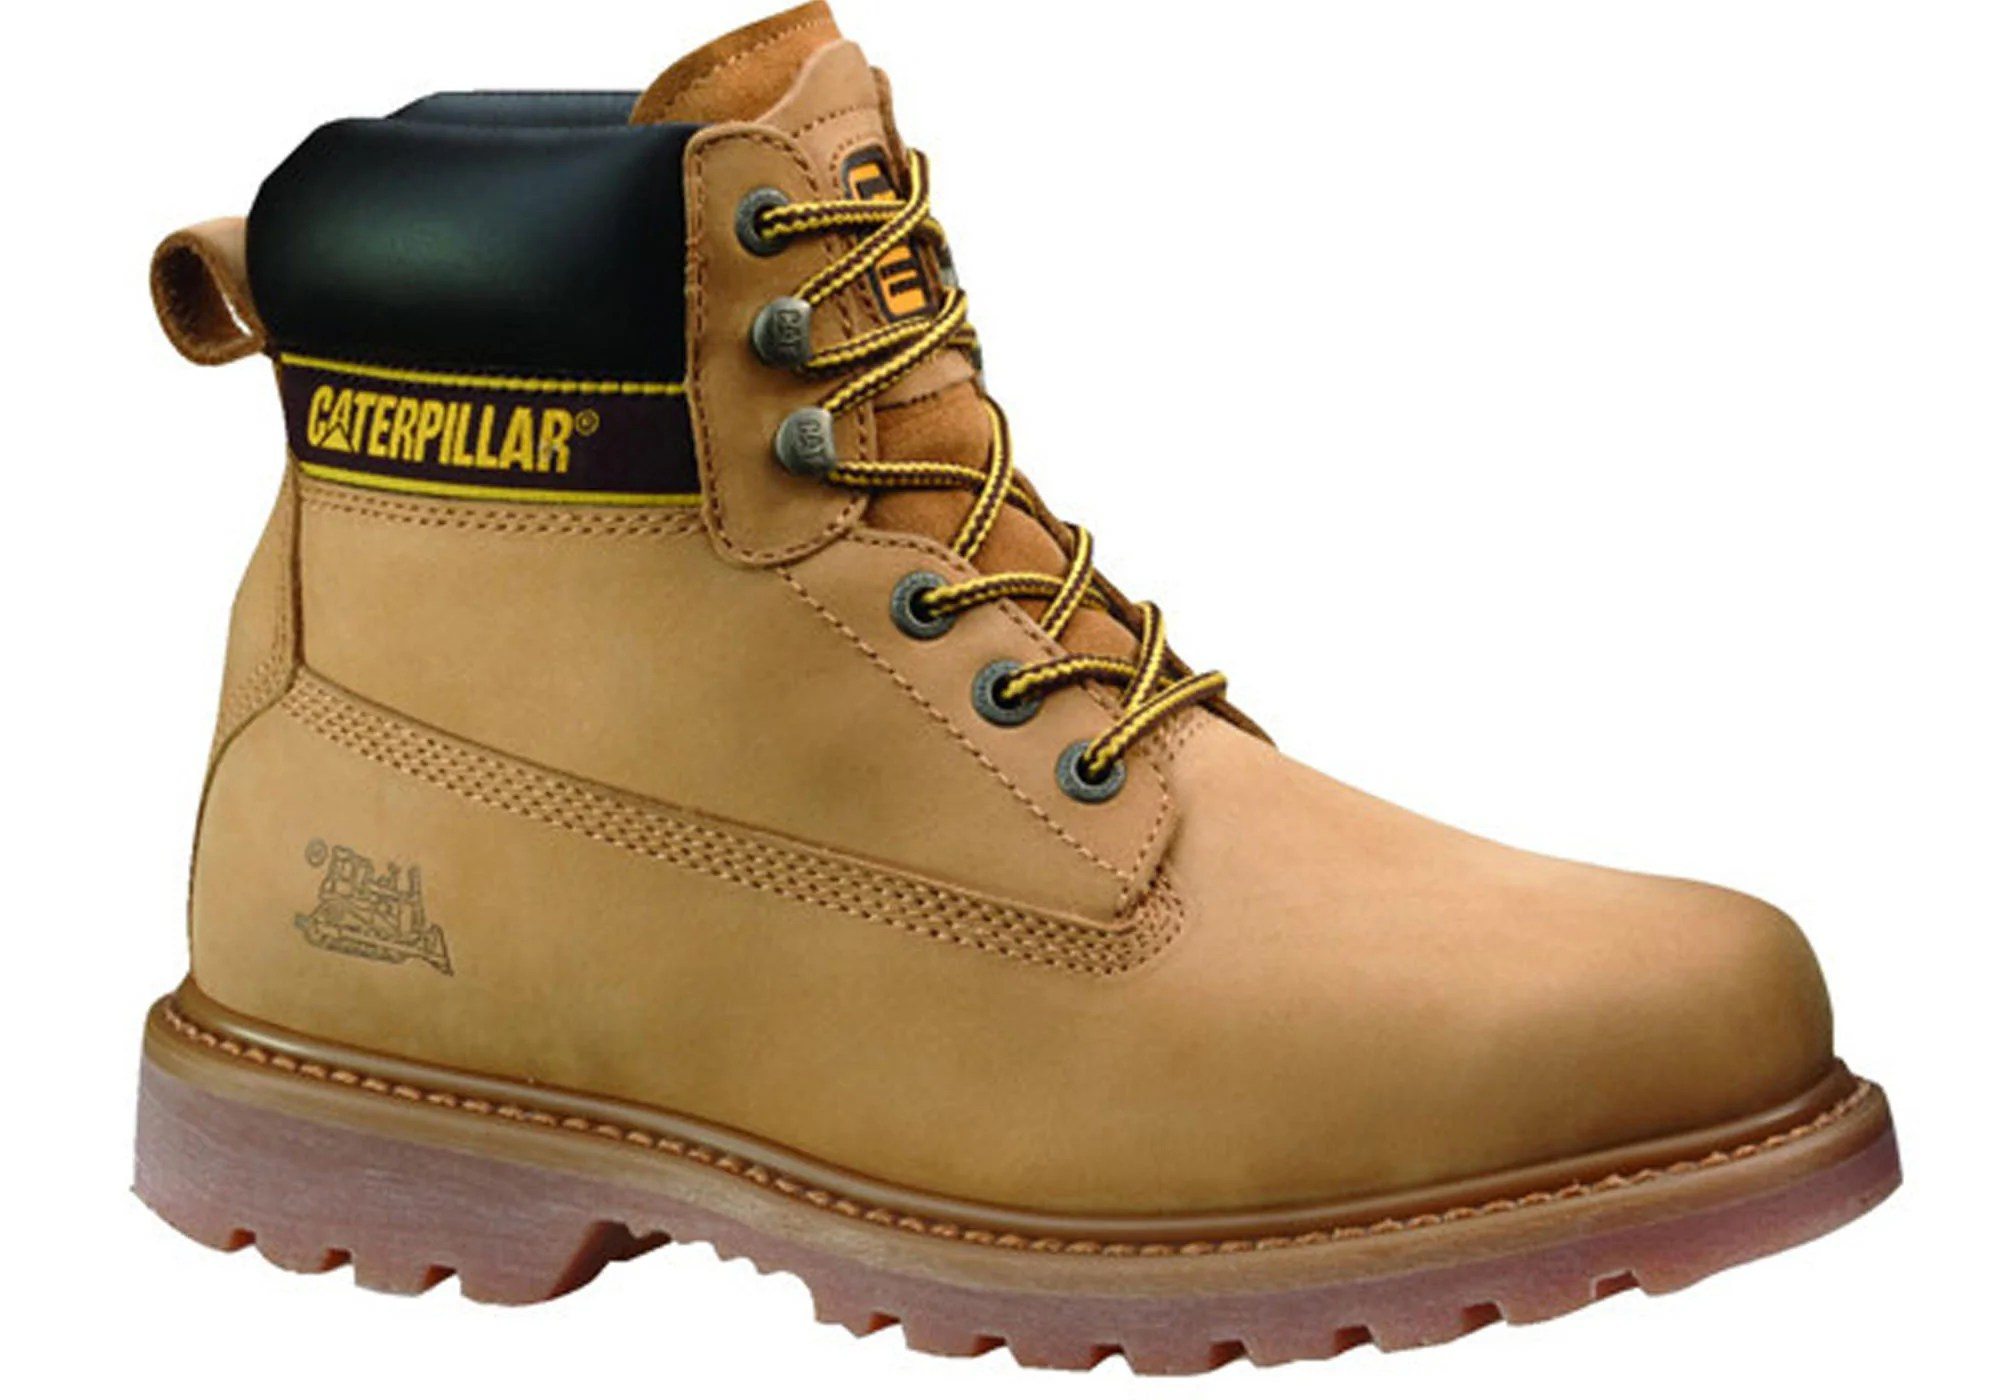 Caterpillar Cat Holton Laceup Steel Toe Mens Work Boots